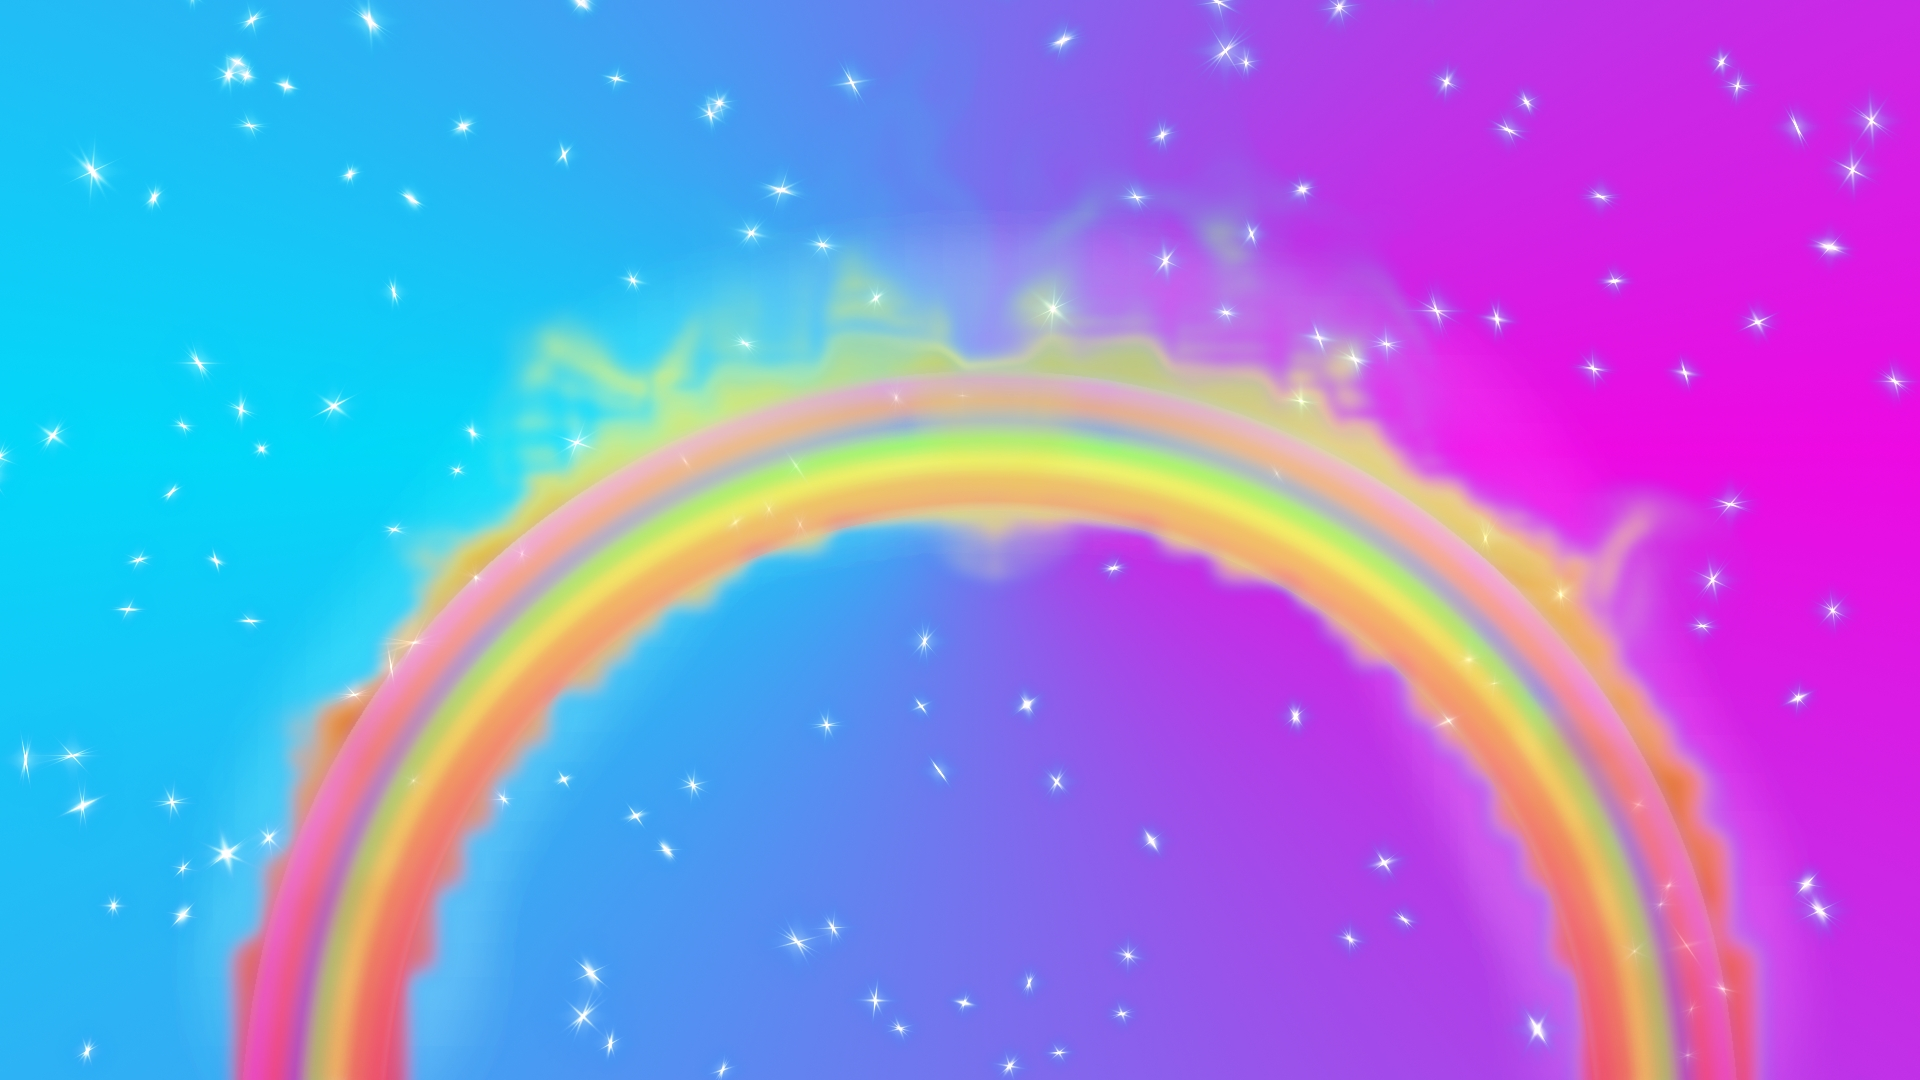 77 Rainbow Desktop Backgrounds On Wallpapersafari